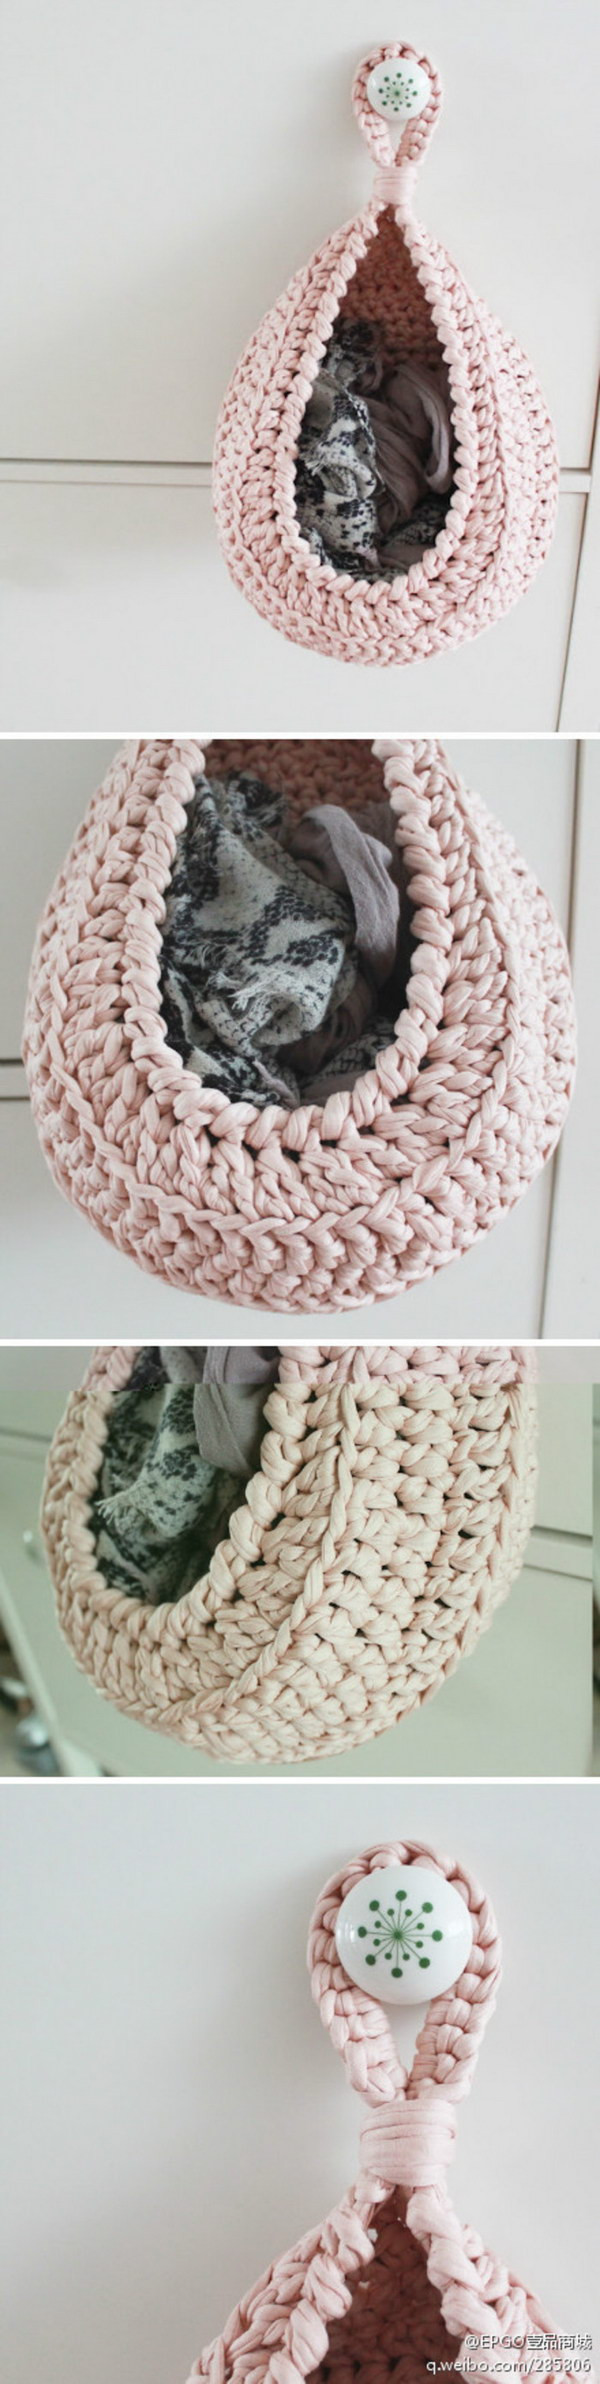 Crochet Ideas Best Of 30 Easy Crochet Projects with Free Patterns for Beginners Of Brilliant 40 Pictures Crochet Ideas